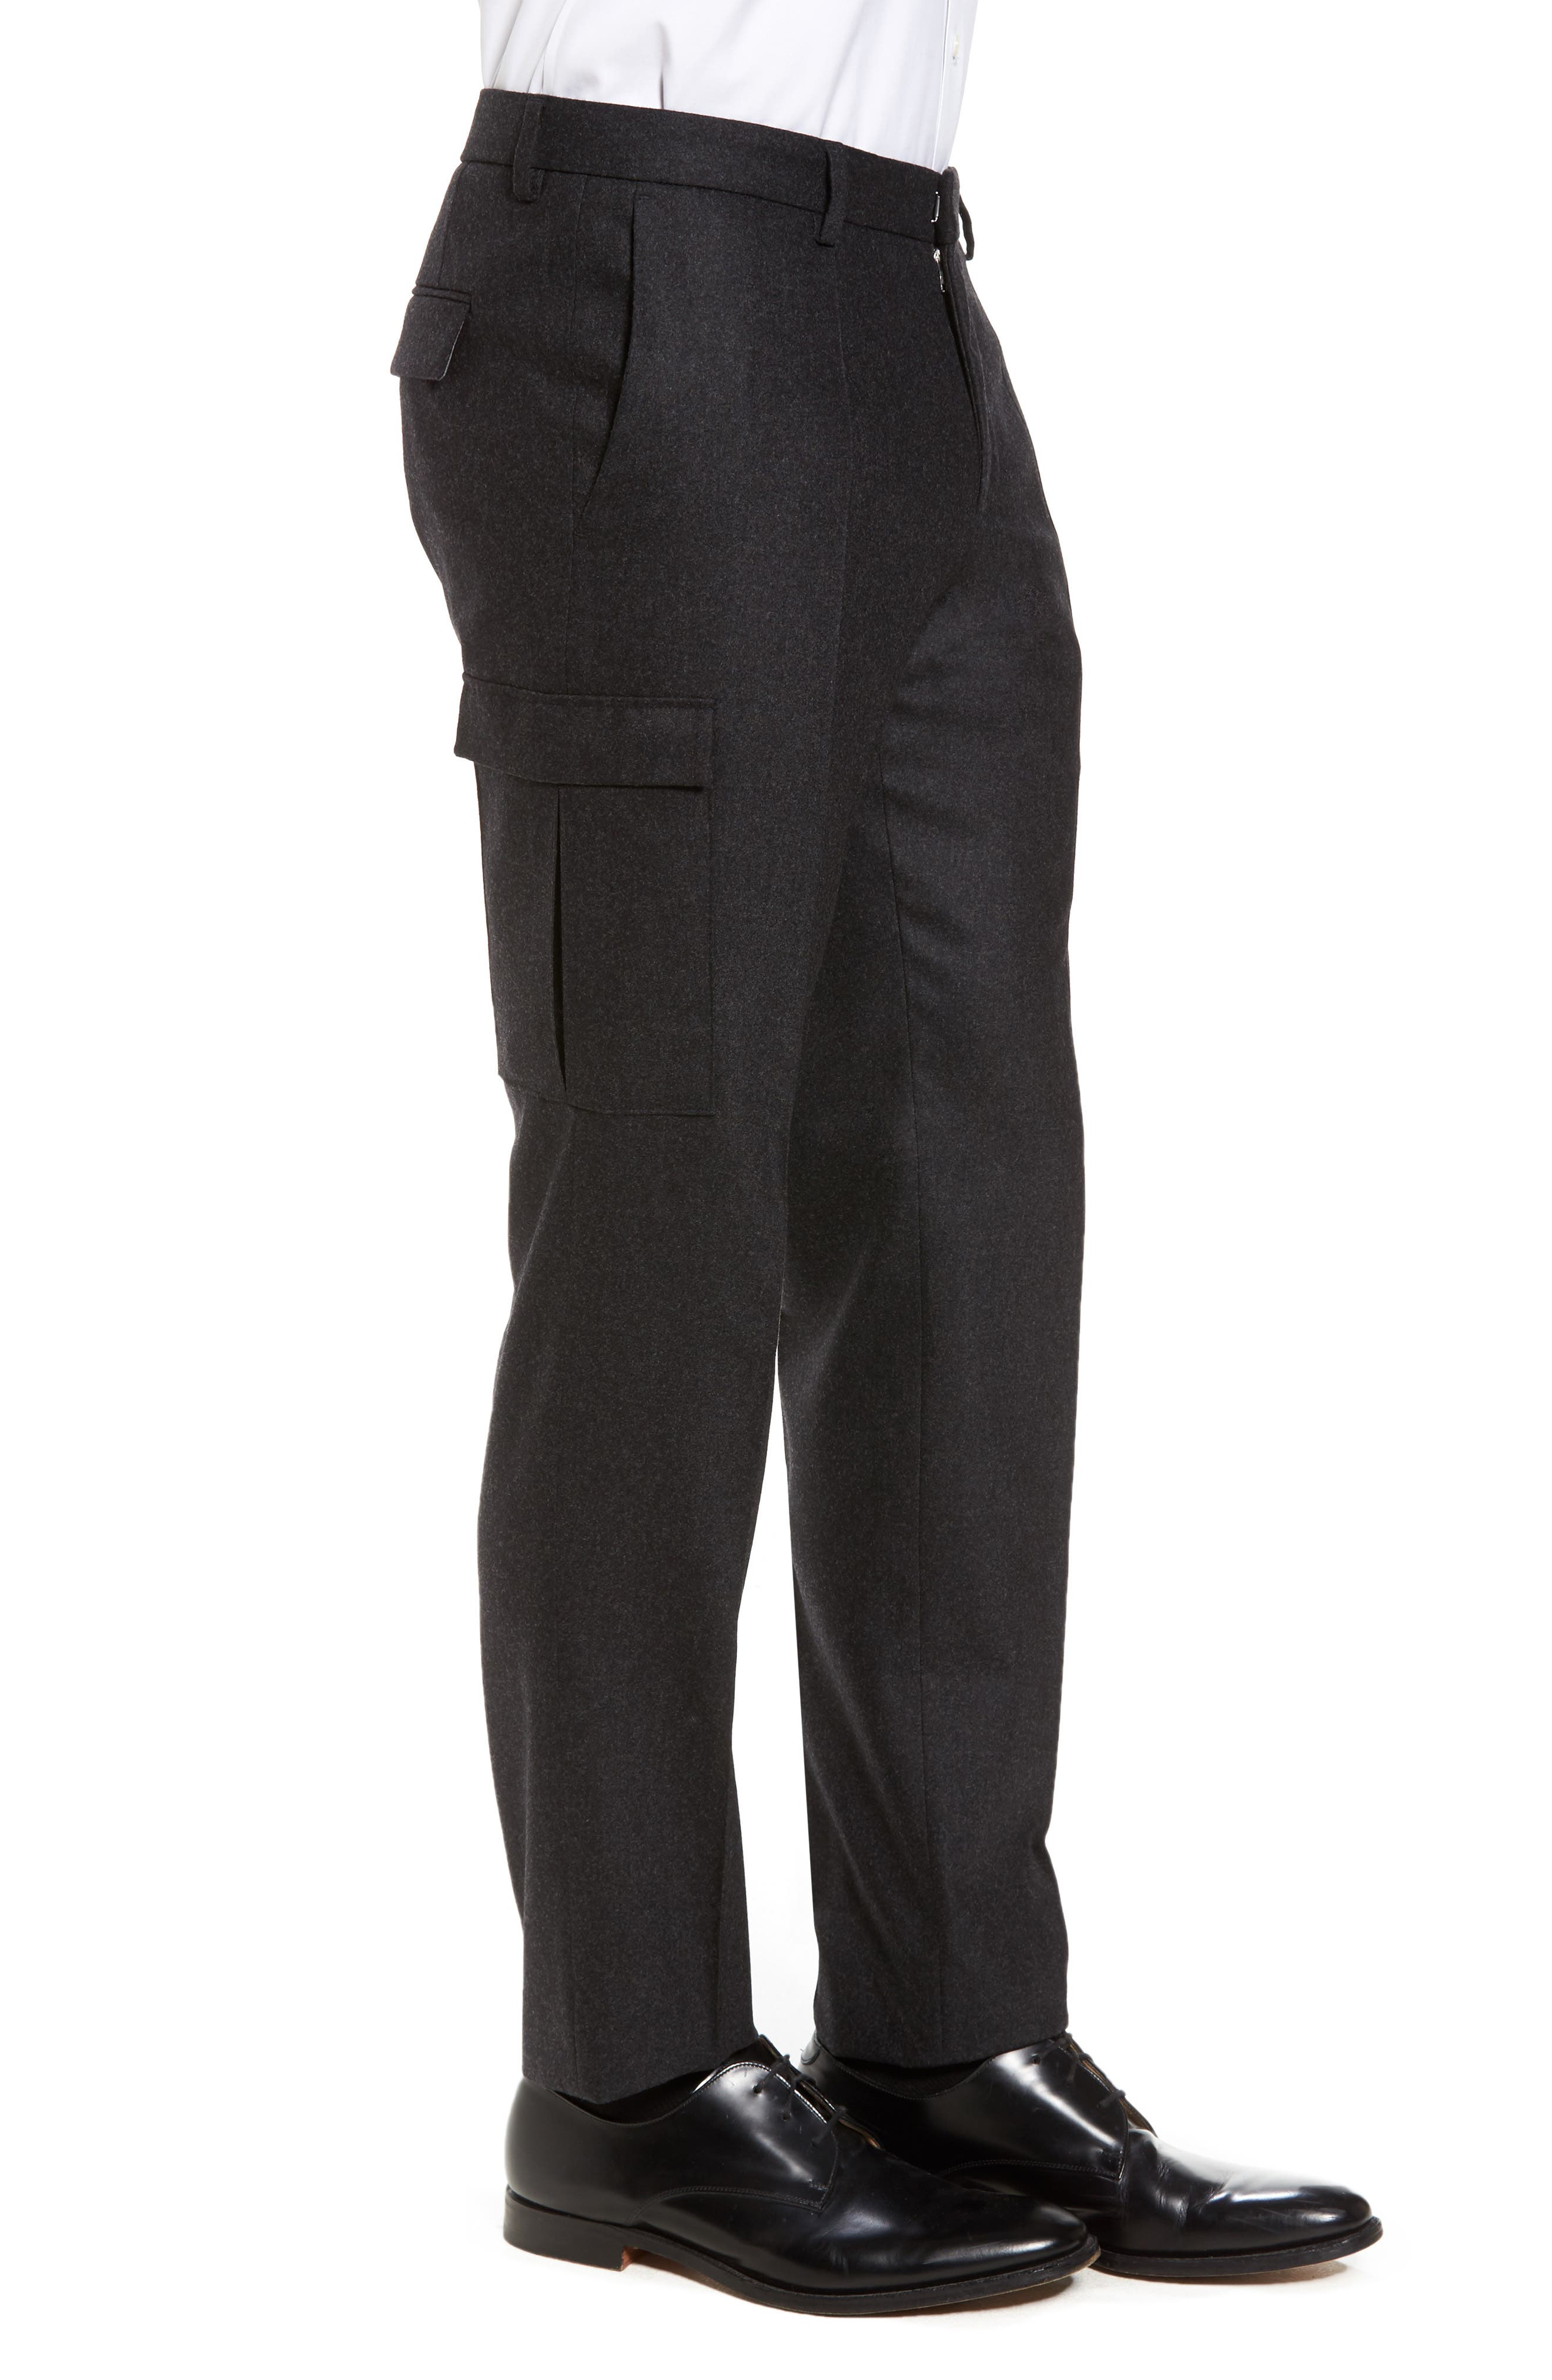 Balour Flat Front Stretch Solid Wool & Cashmere Cargo Trousers,                             Alternate thumbnail 3, color,                             Dark Grey